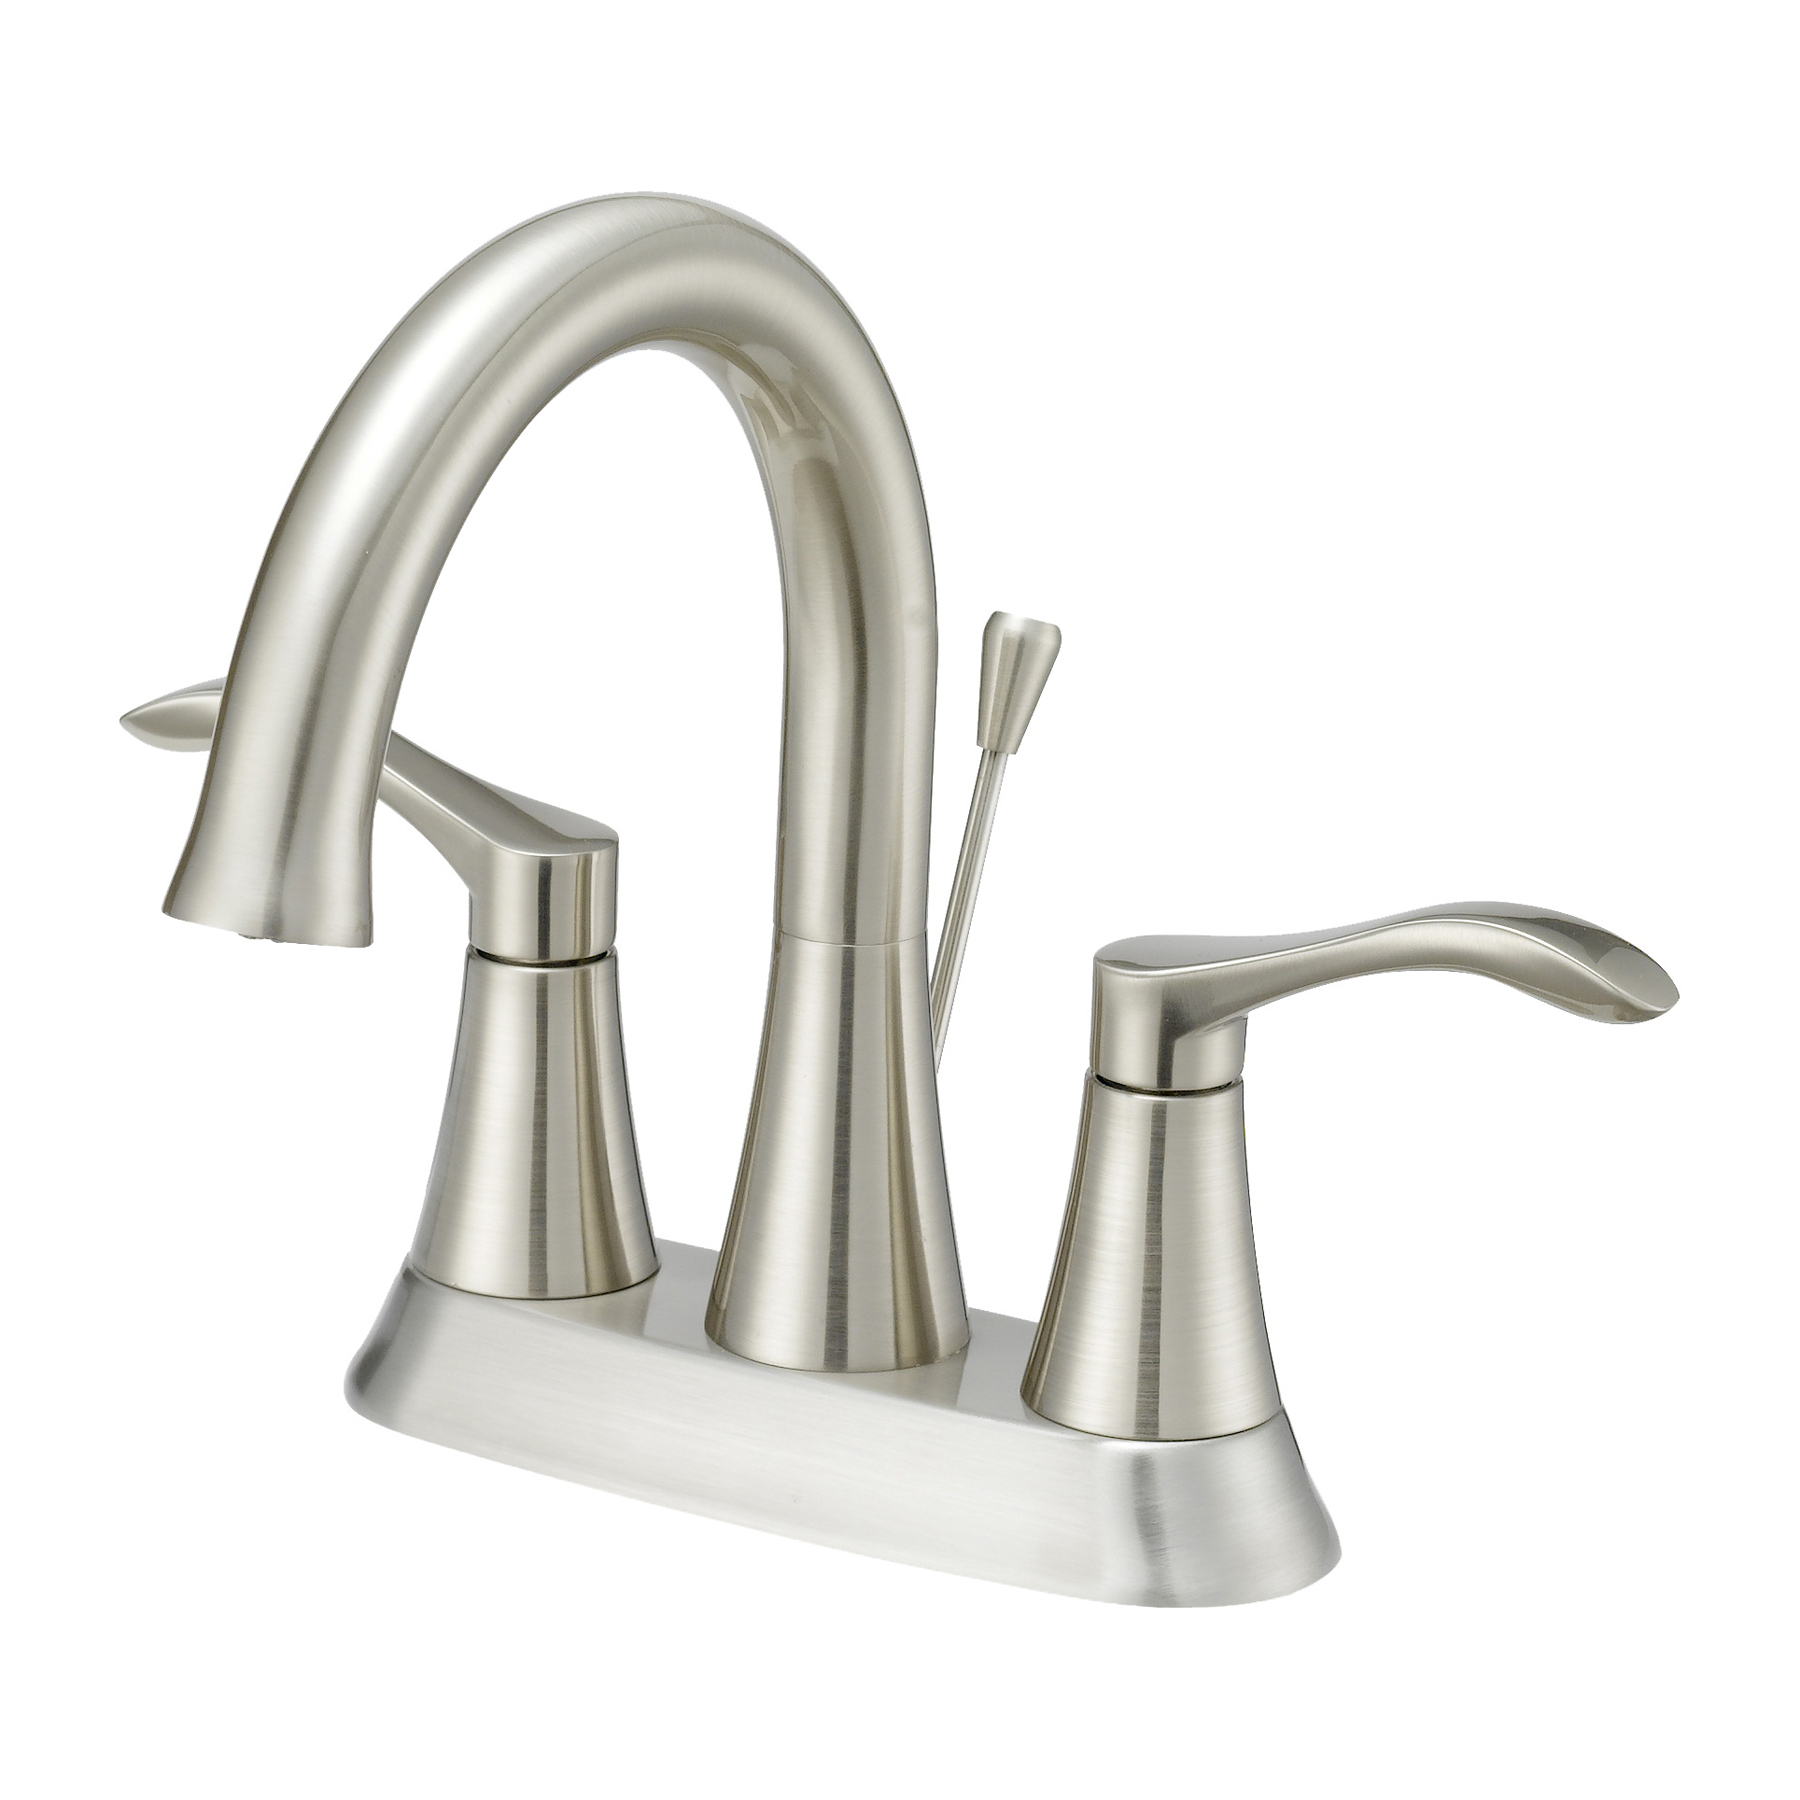 Picture of Boston Harbor F51A0073NP Bathroom Faucet, 1.2 gpm, 2-Faucet Handle, 3-Faucet Hole, Brushed Nickel, Lever Handle